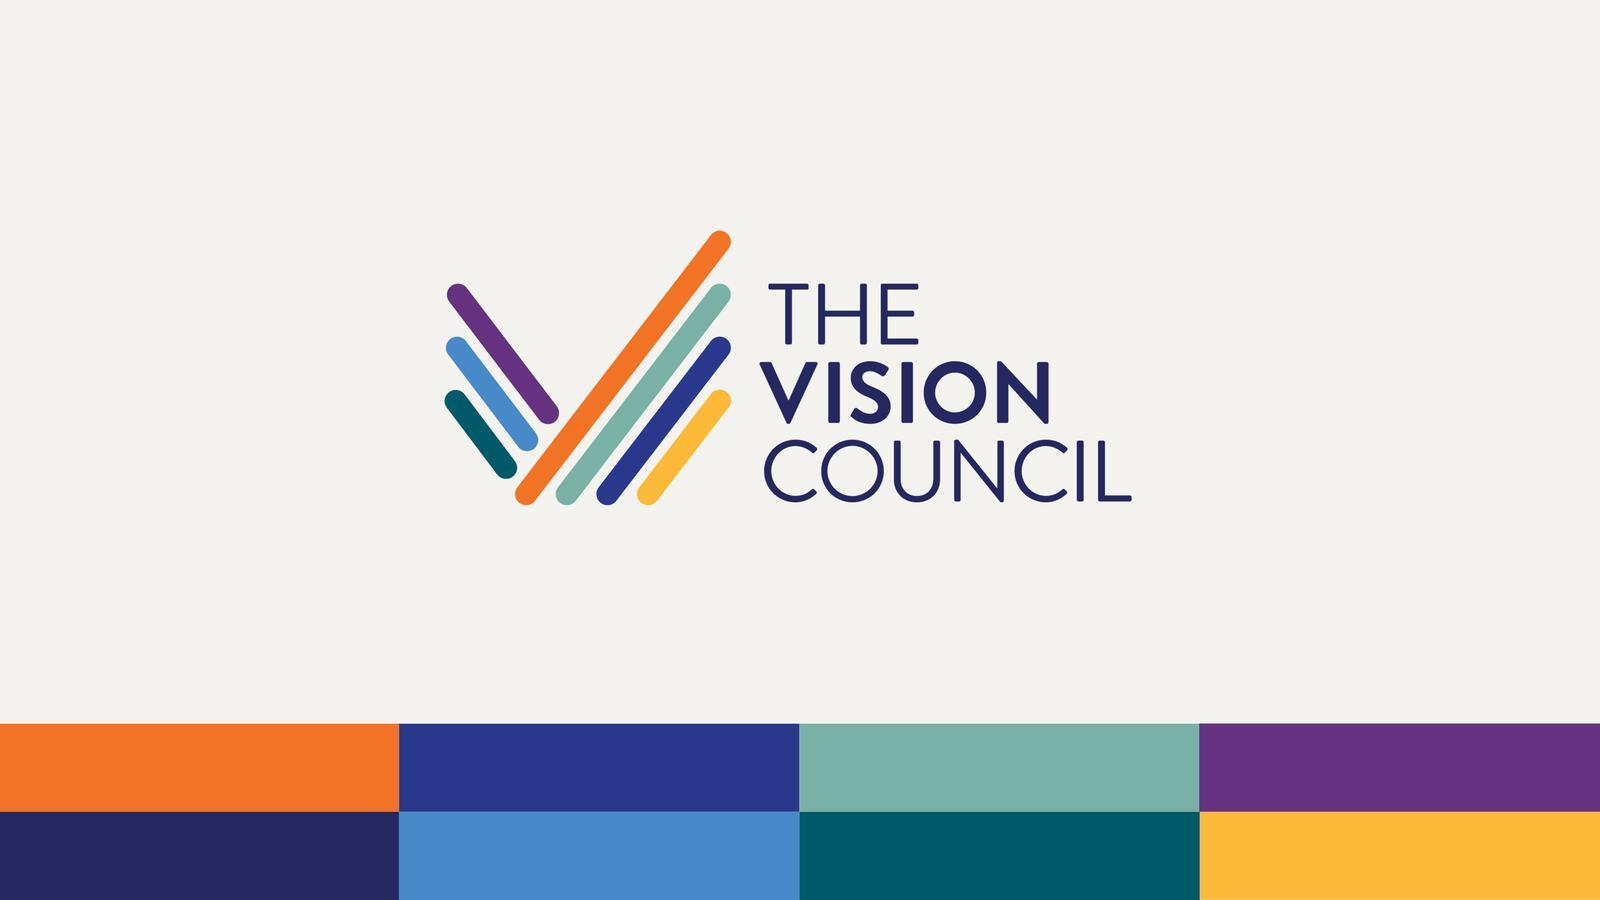 The Vision Council: A New Vision